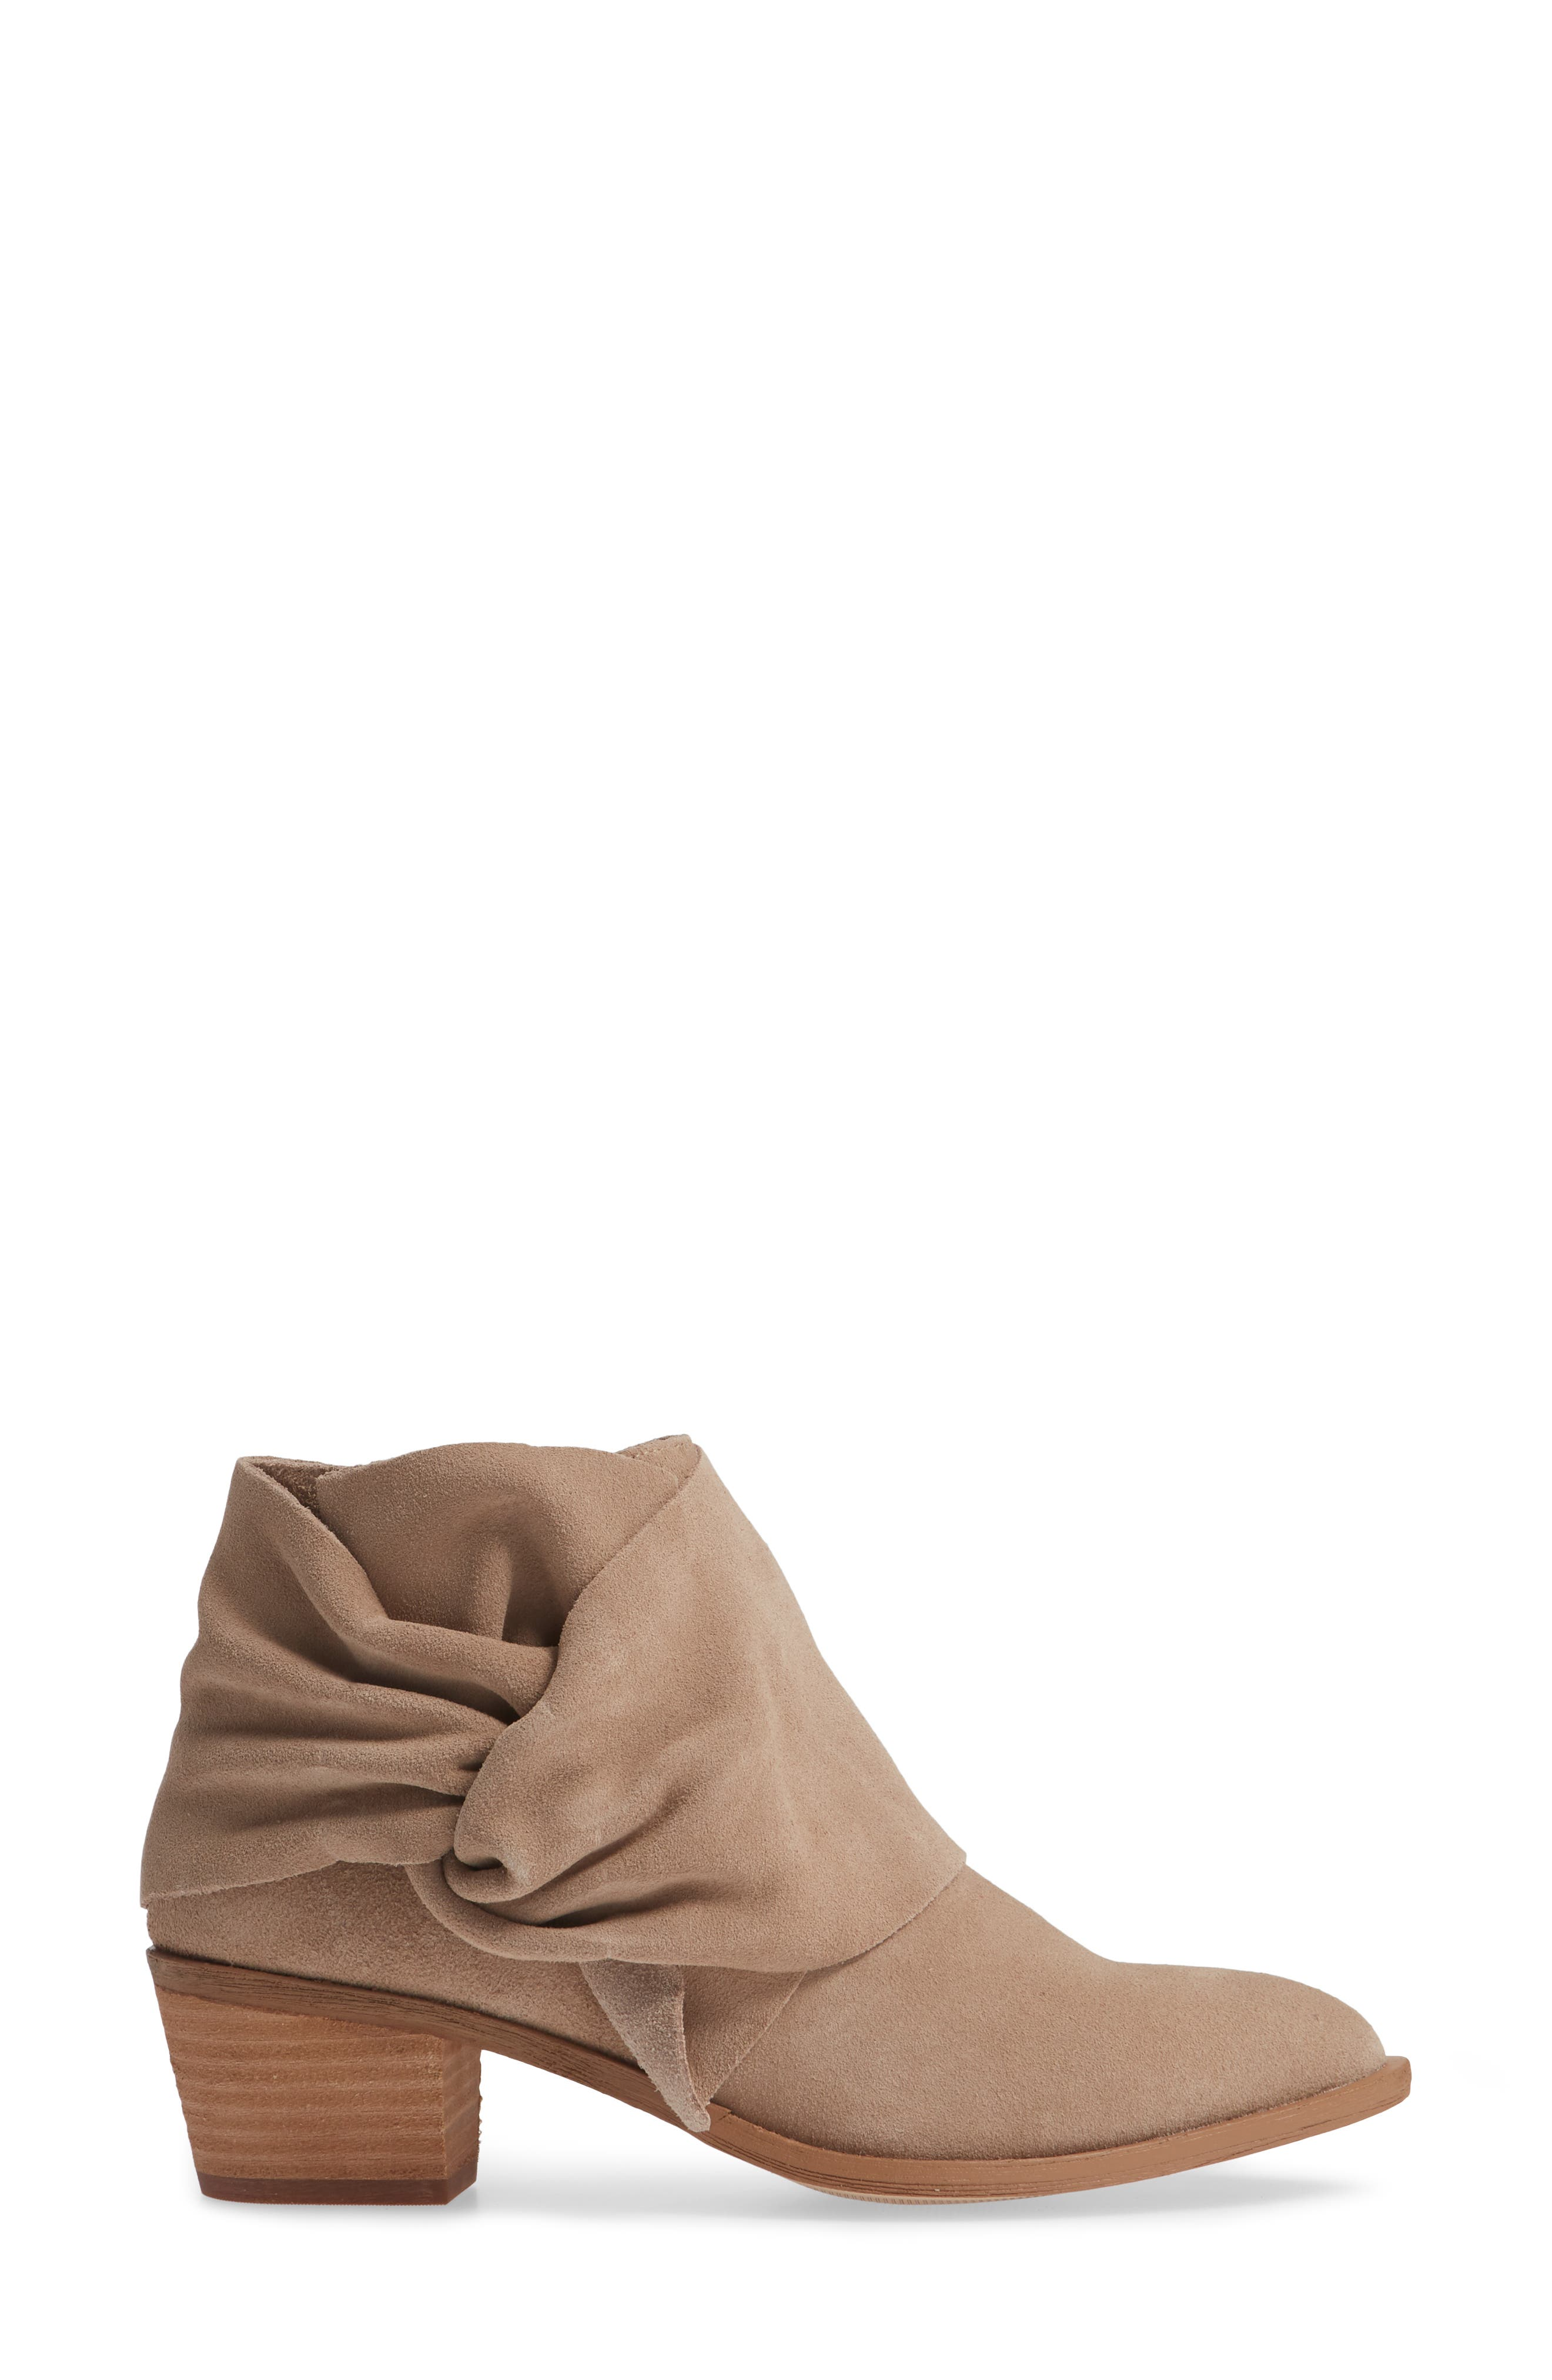 Natalyia Bootie,                             Alternate thumbnail 3, color,                             WARM TAUPE SUEDE